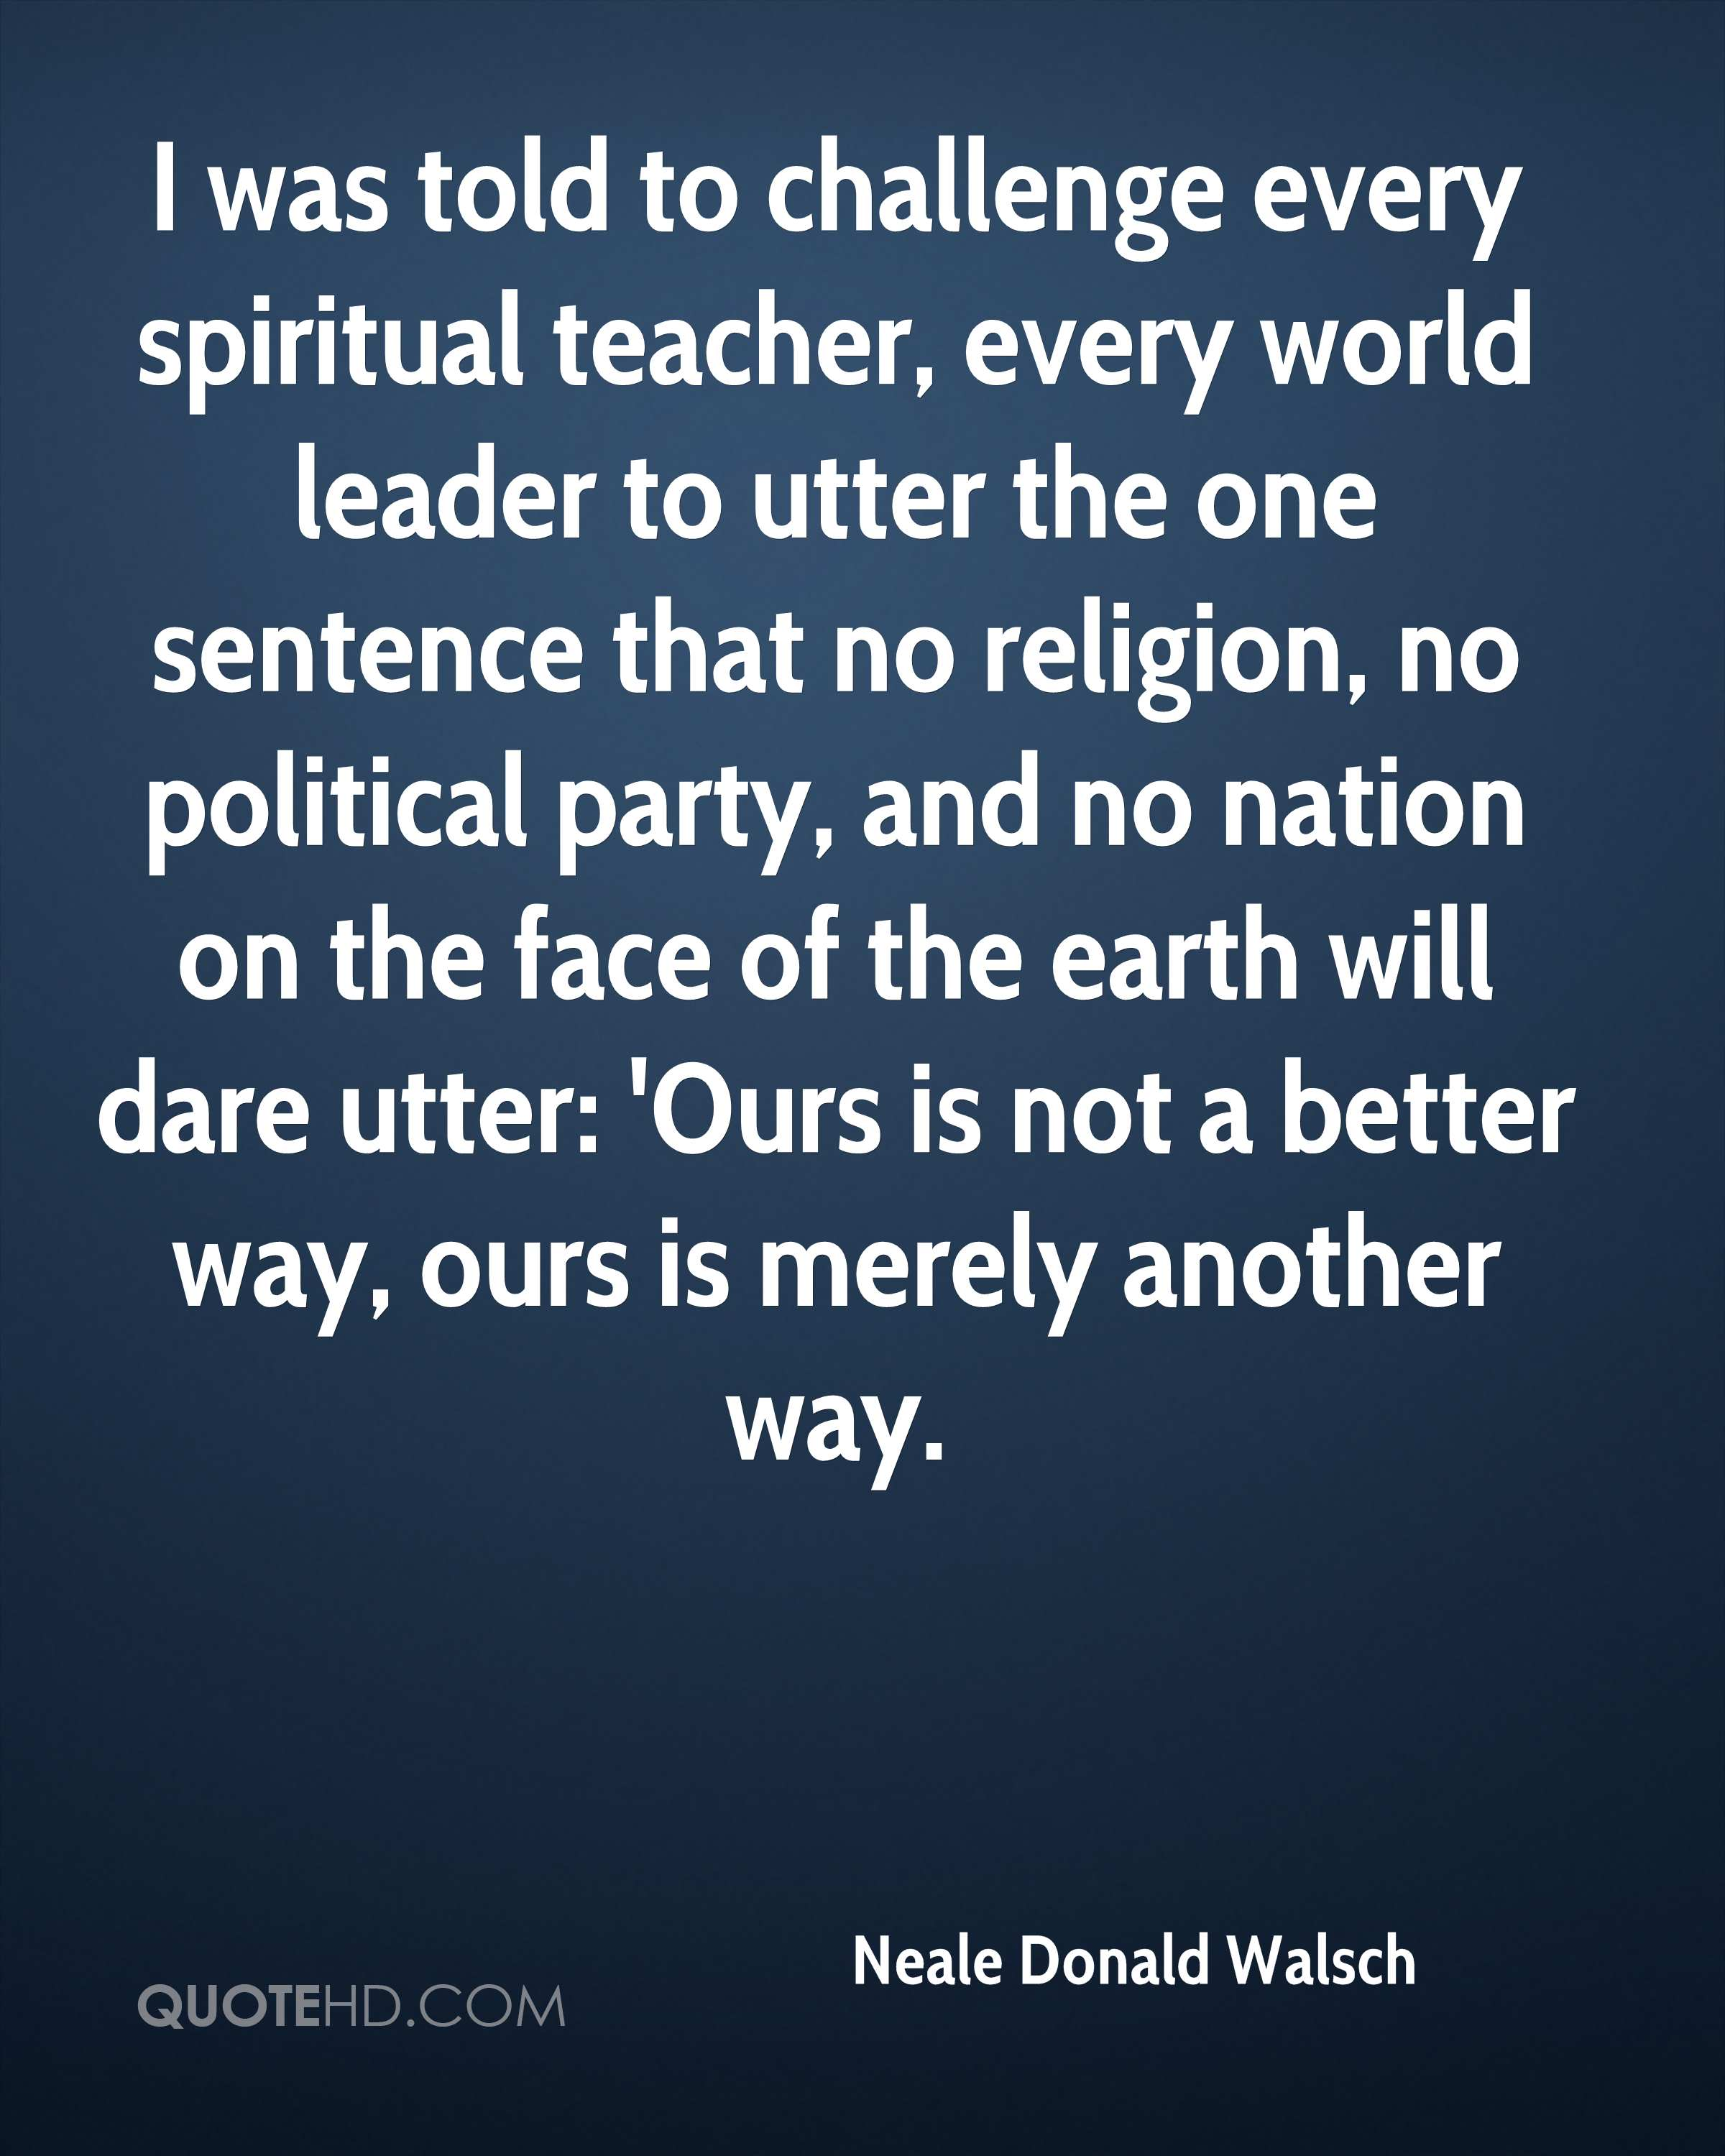 I was told to challenge every spiritual teacher, every world leader to utter the one sentence that no religion, no political party, and no nation on the face of the earth will dare utter: 'Ours is not a better way, ours is merely another way.